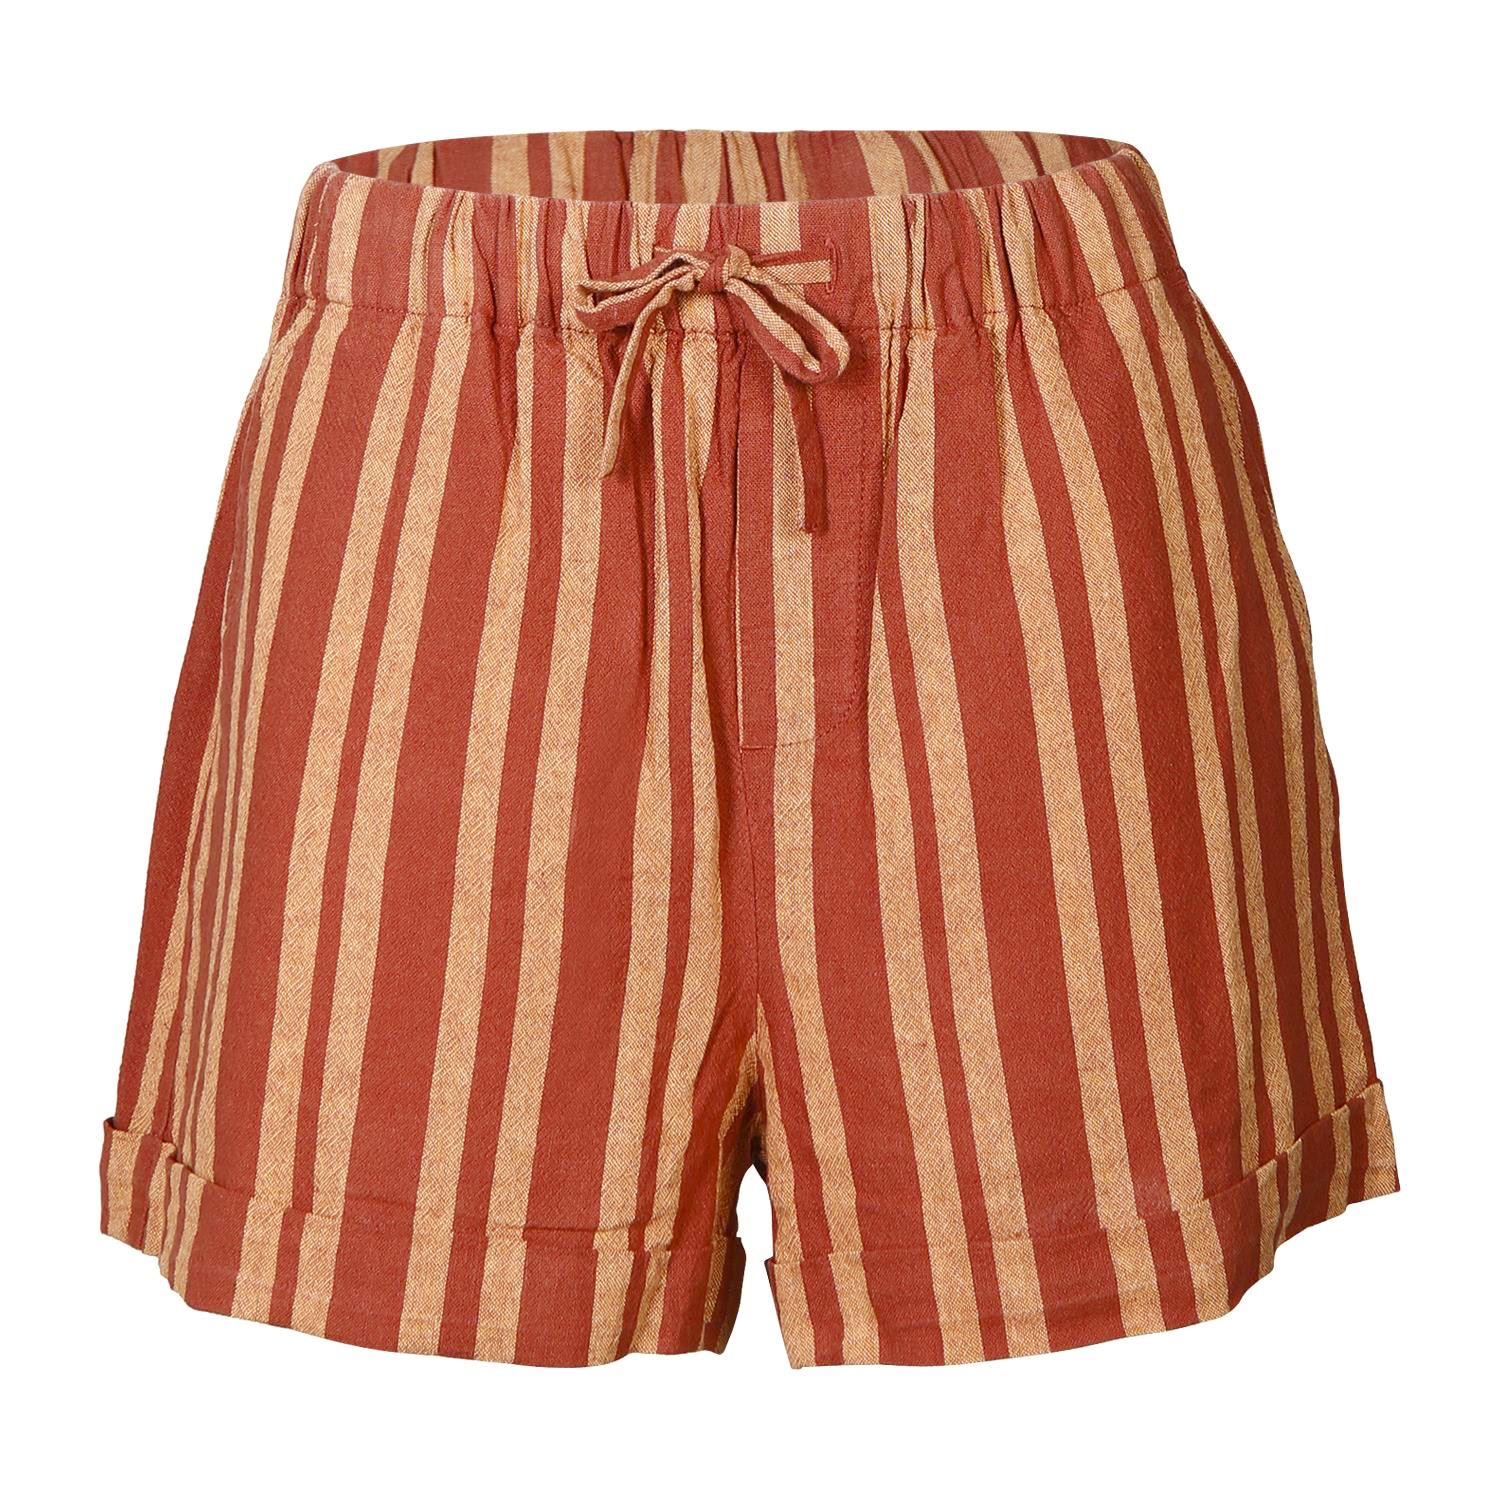 Brunotti Anbu  (orange) - women casual shorts - Brunotti online shop